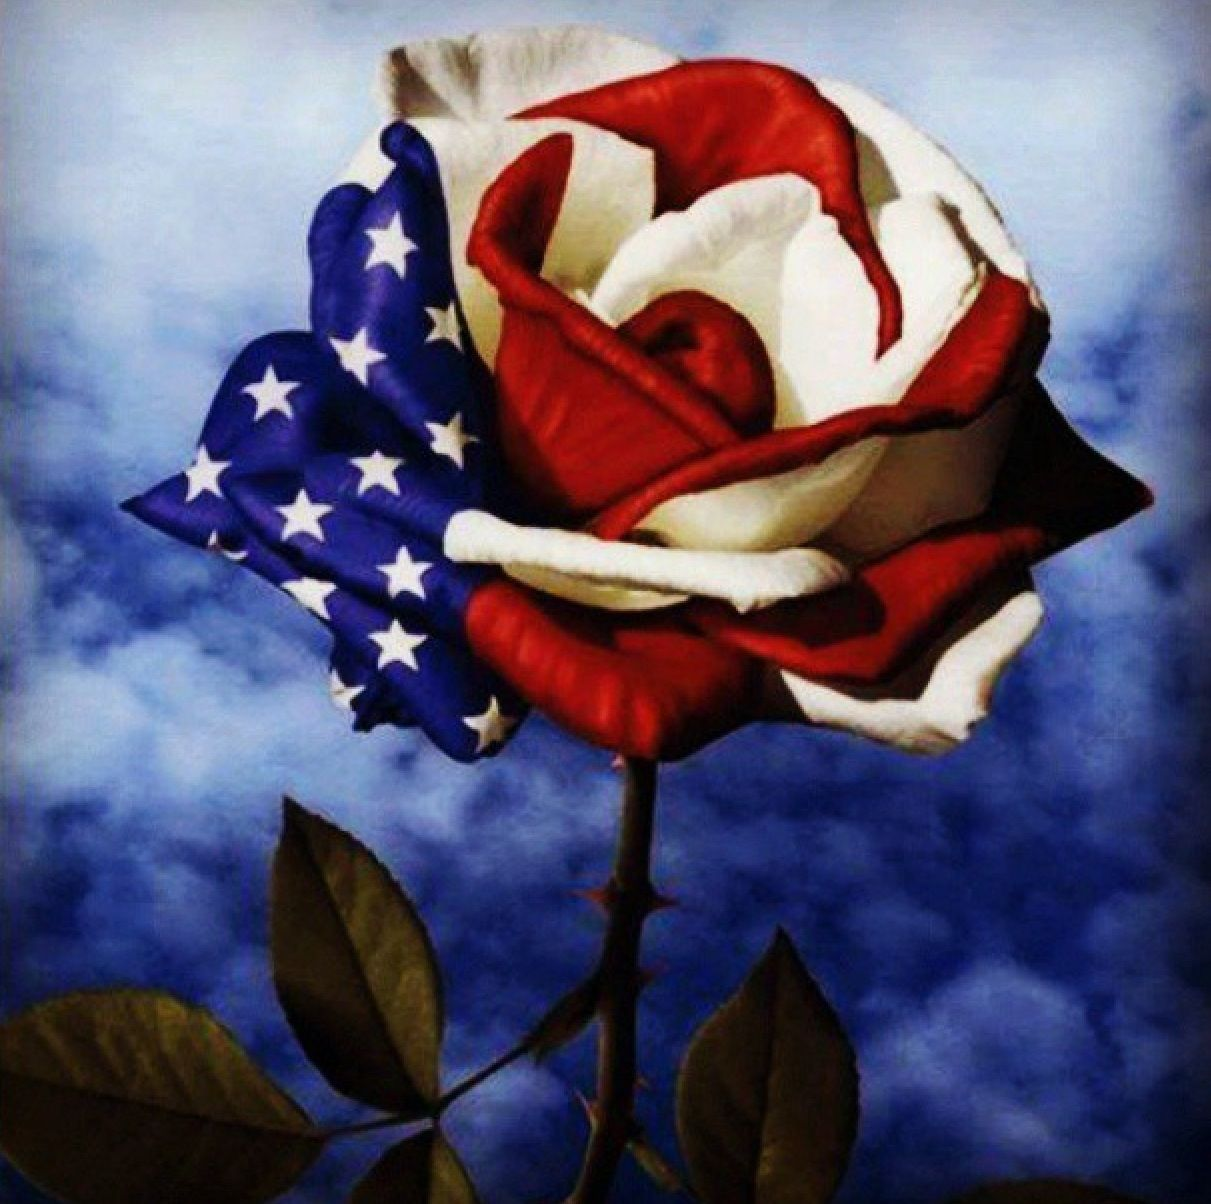 Divided We Fall Wallpaper Red White And Blue Rose A Thing Of Beauty Pinterest